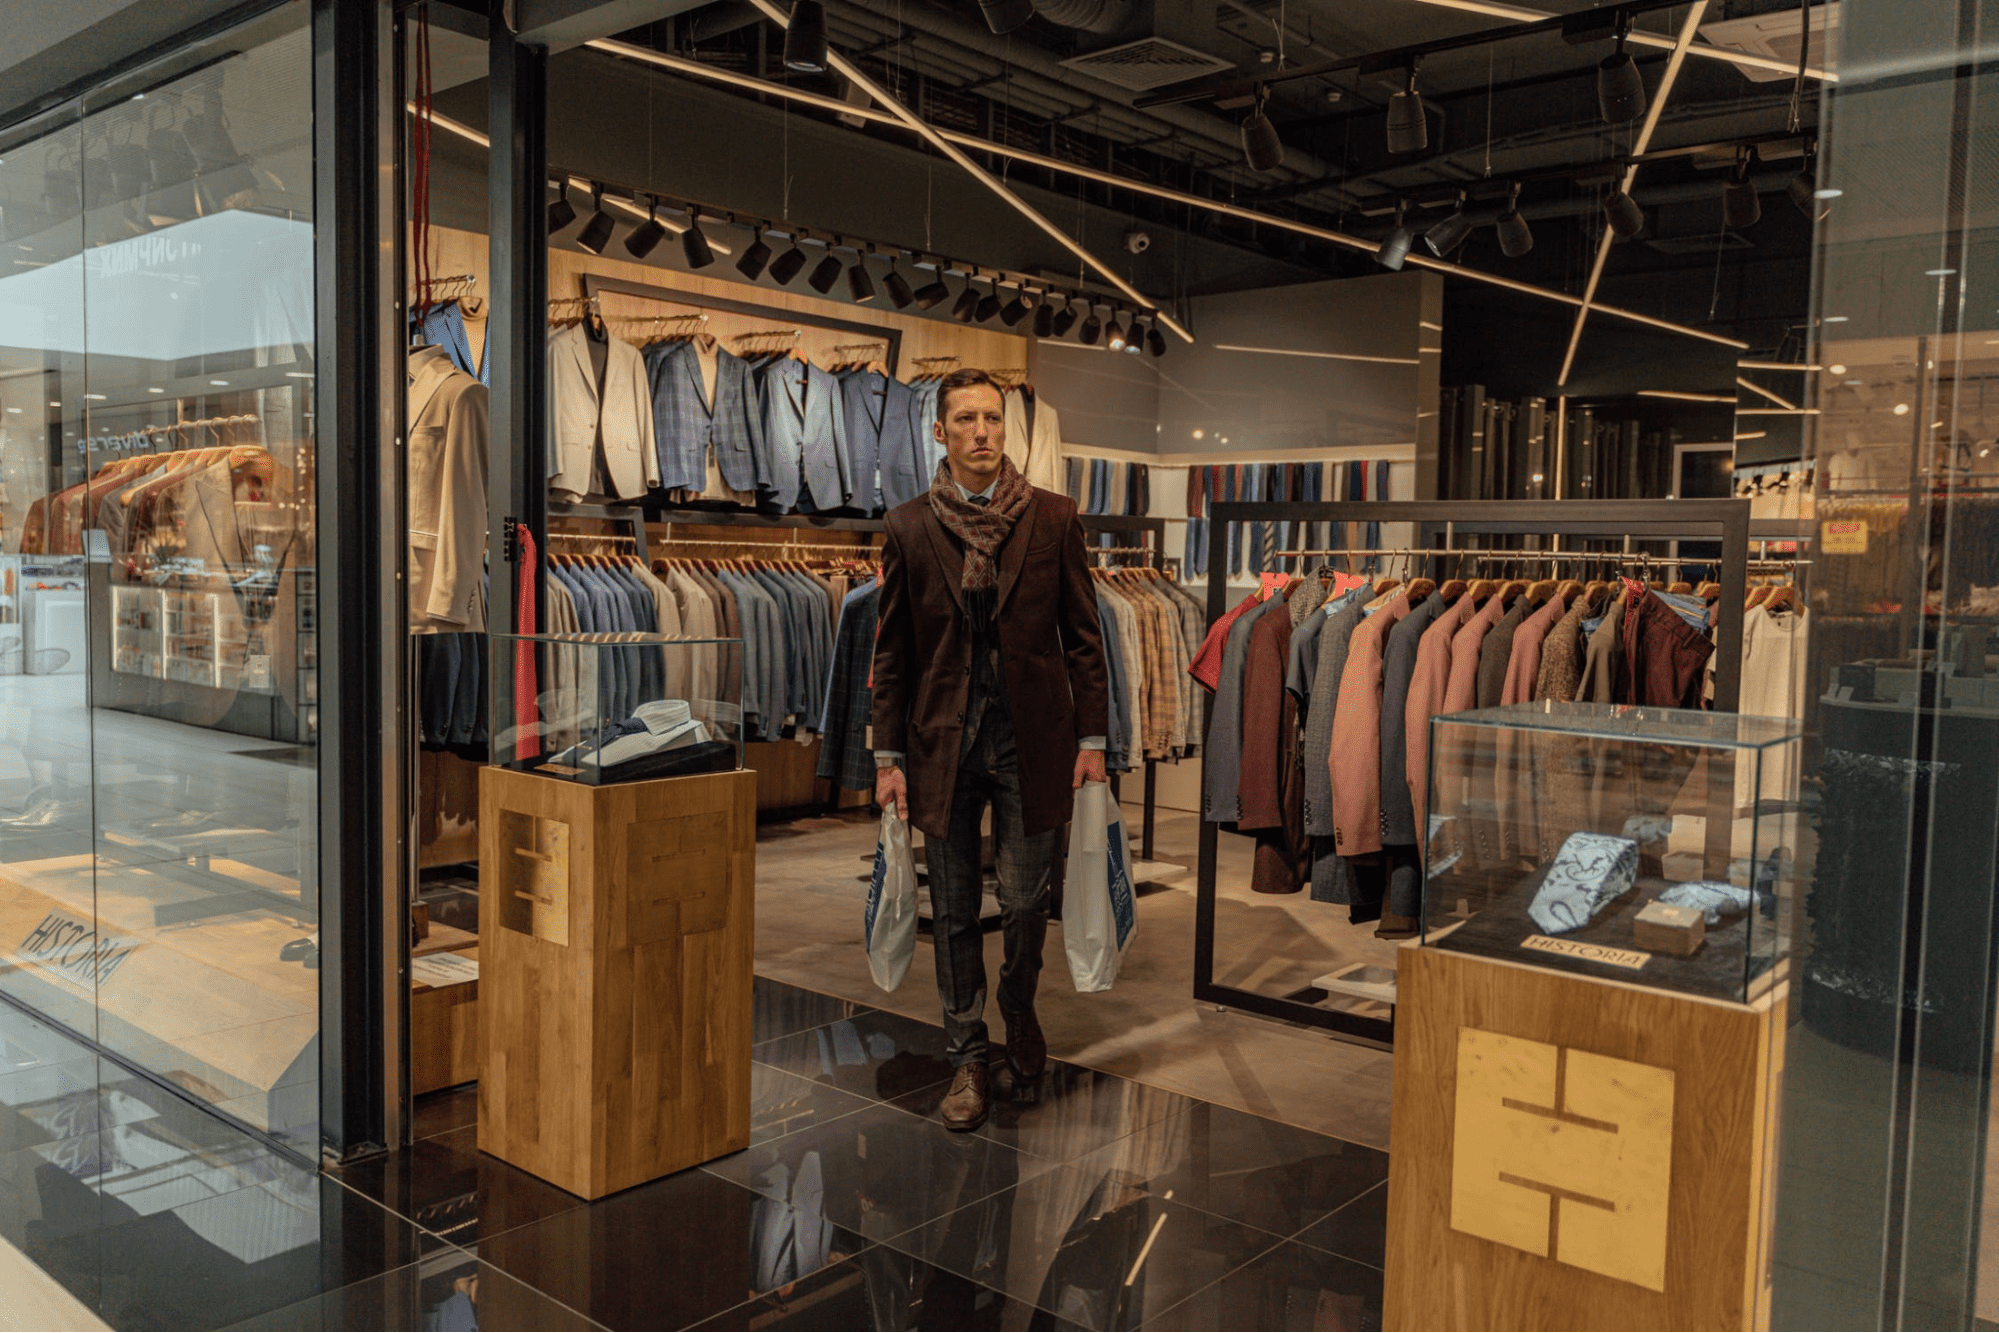 Man shopping at a department store